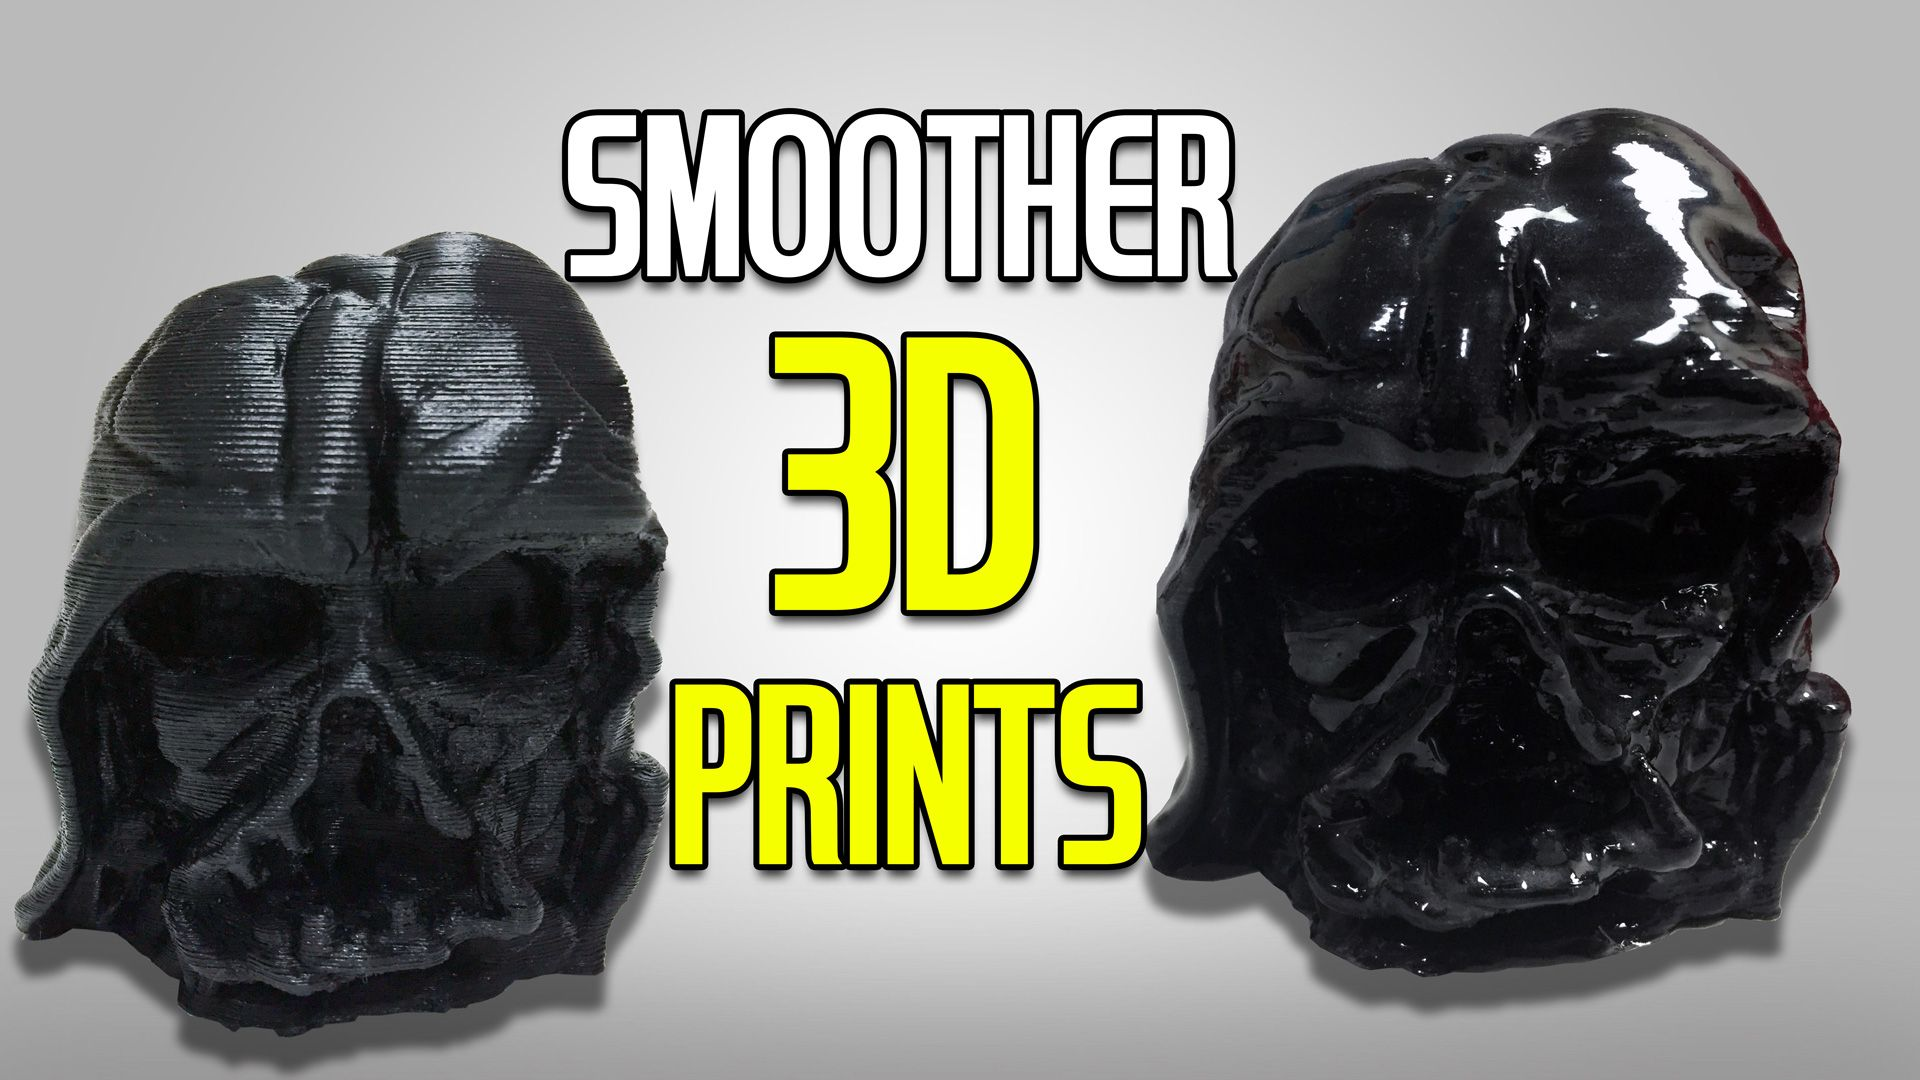 Smoother 3D Prints with Epoxy not Acetone